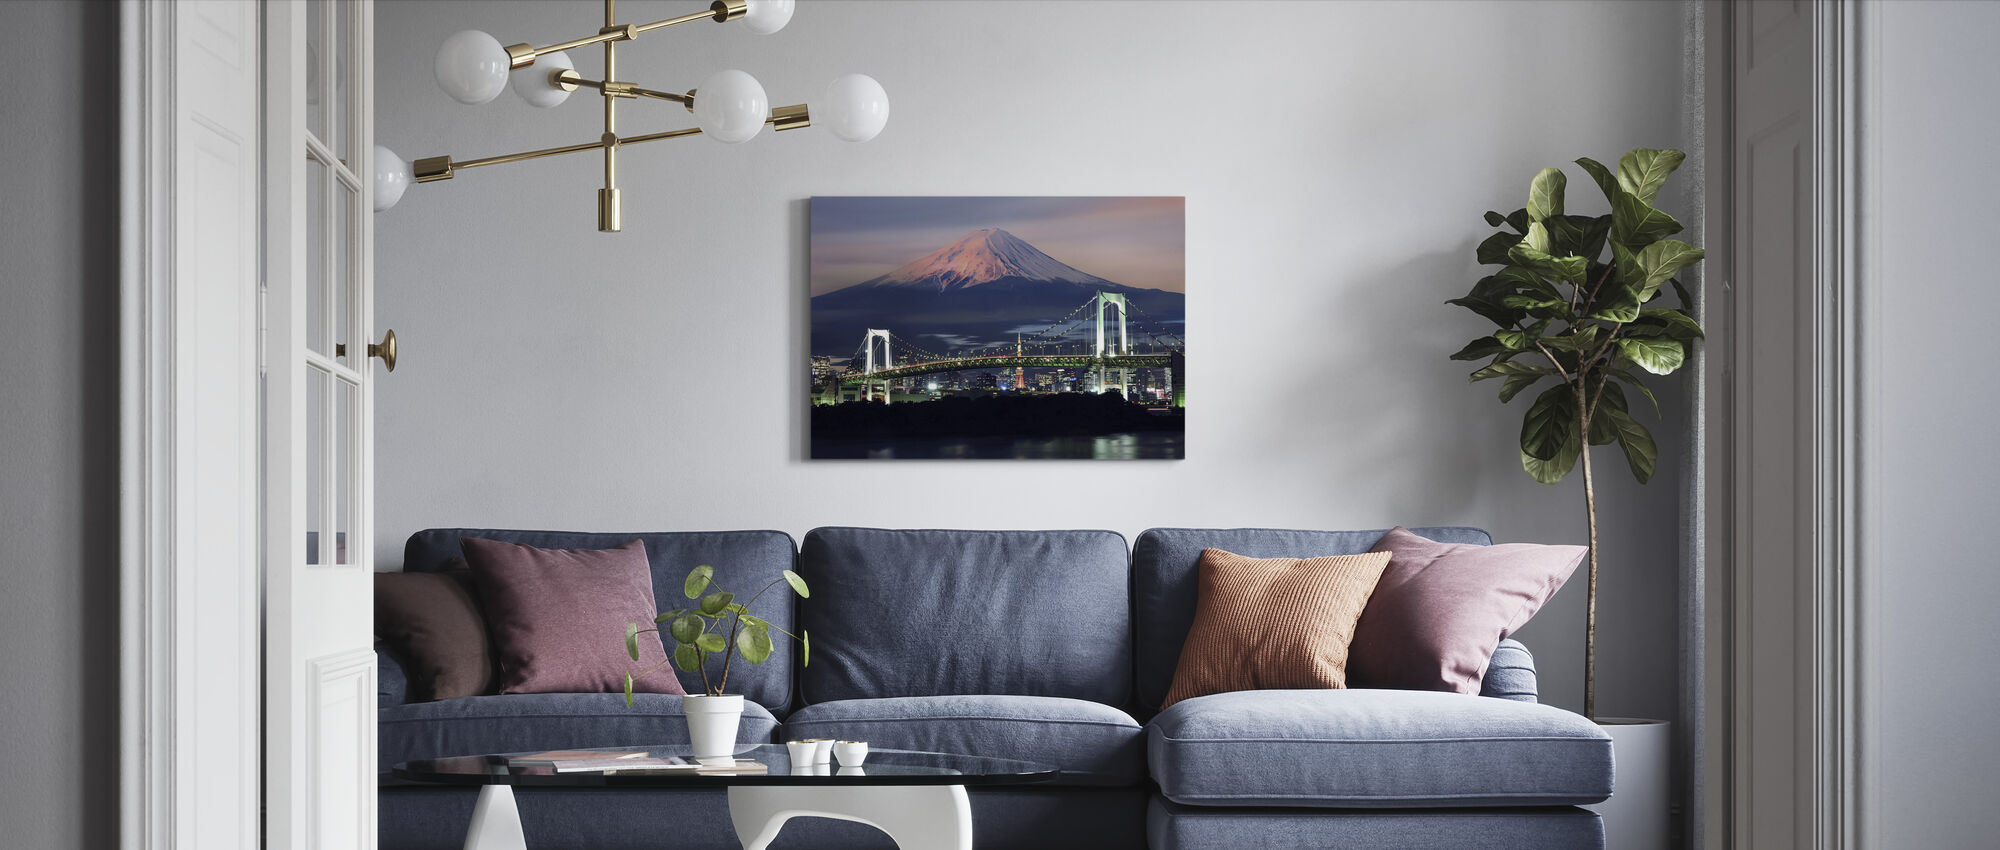 Rainbow Bridge with Mt Fuji - Canvas print - Living Room